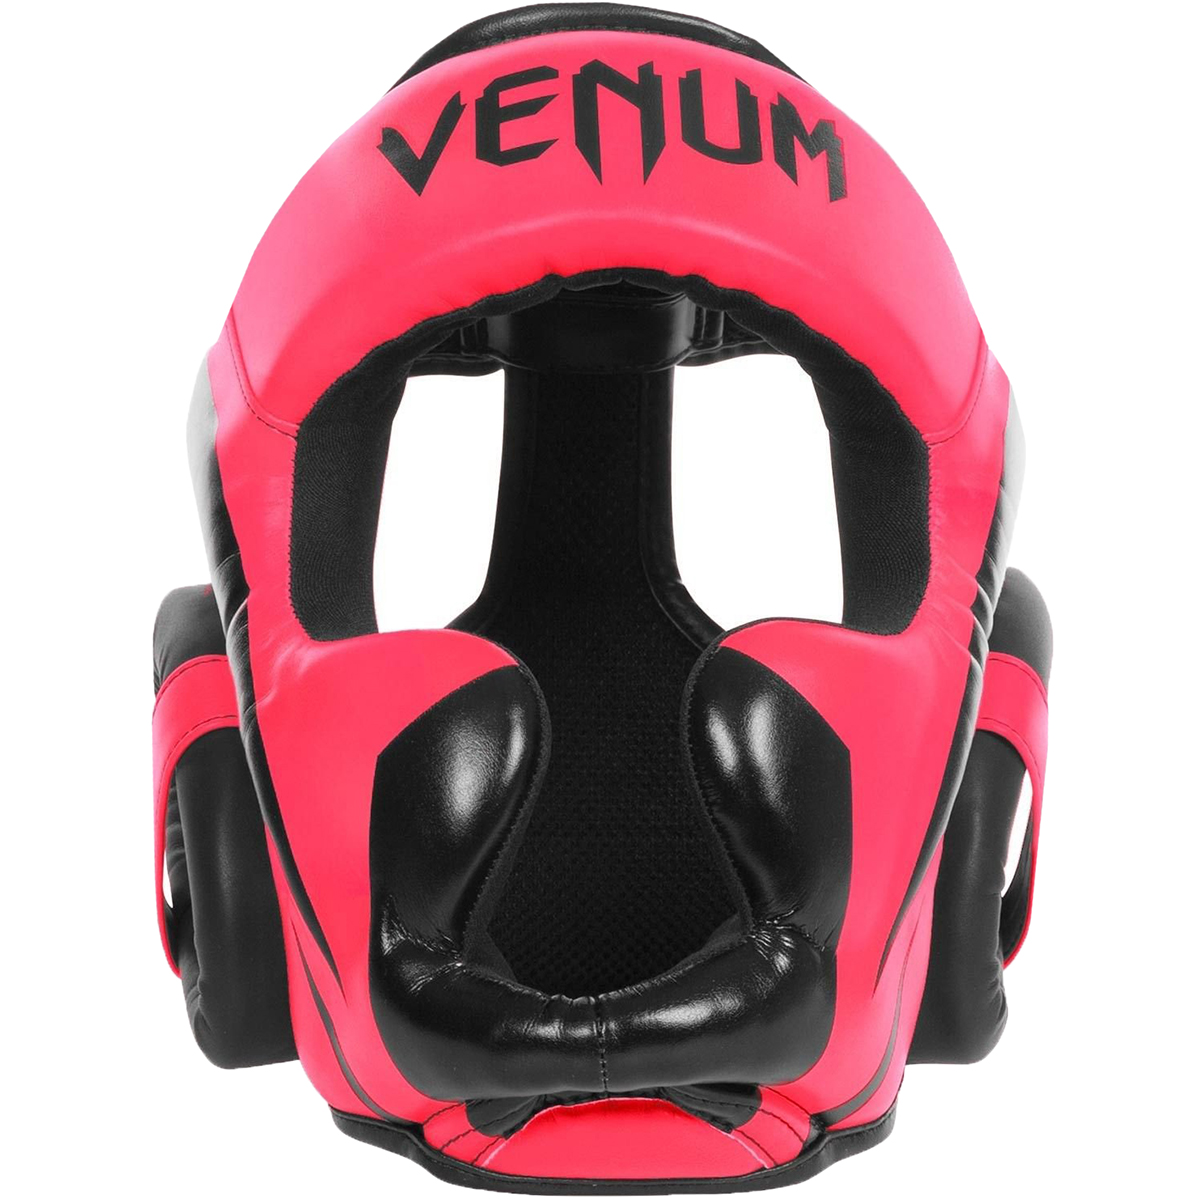 Venum-Elite-Boxing-Headgear thumbnail 34